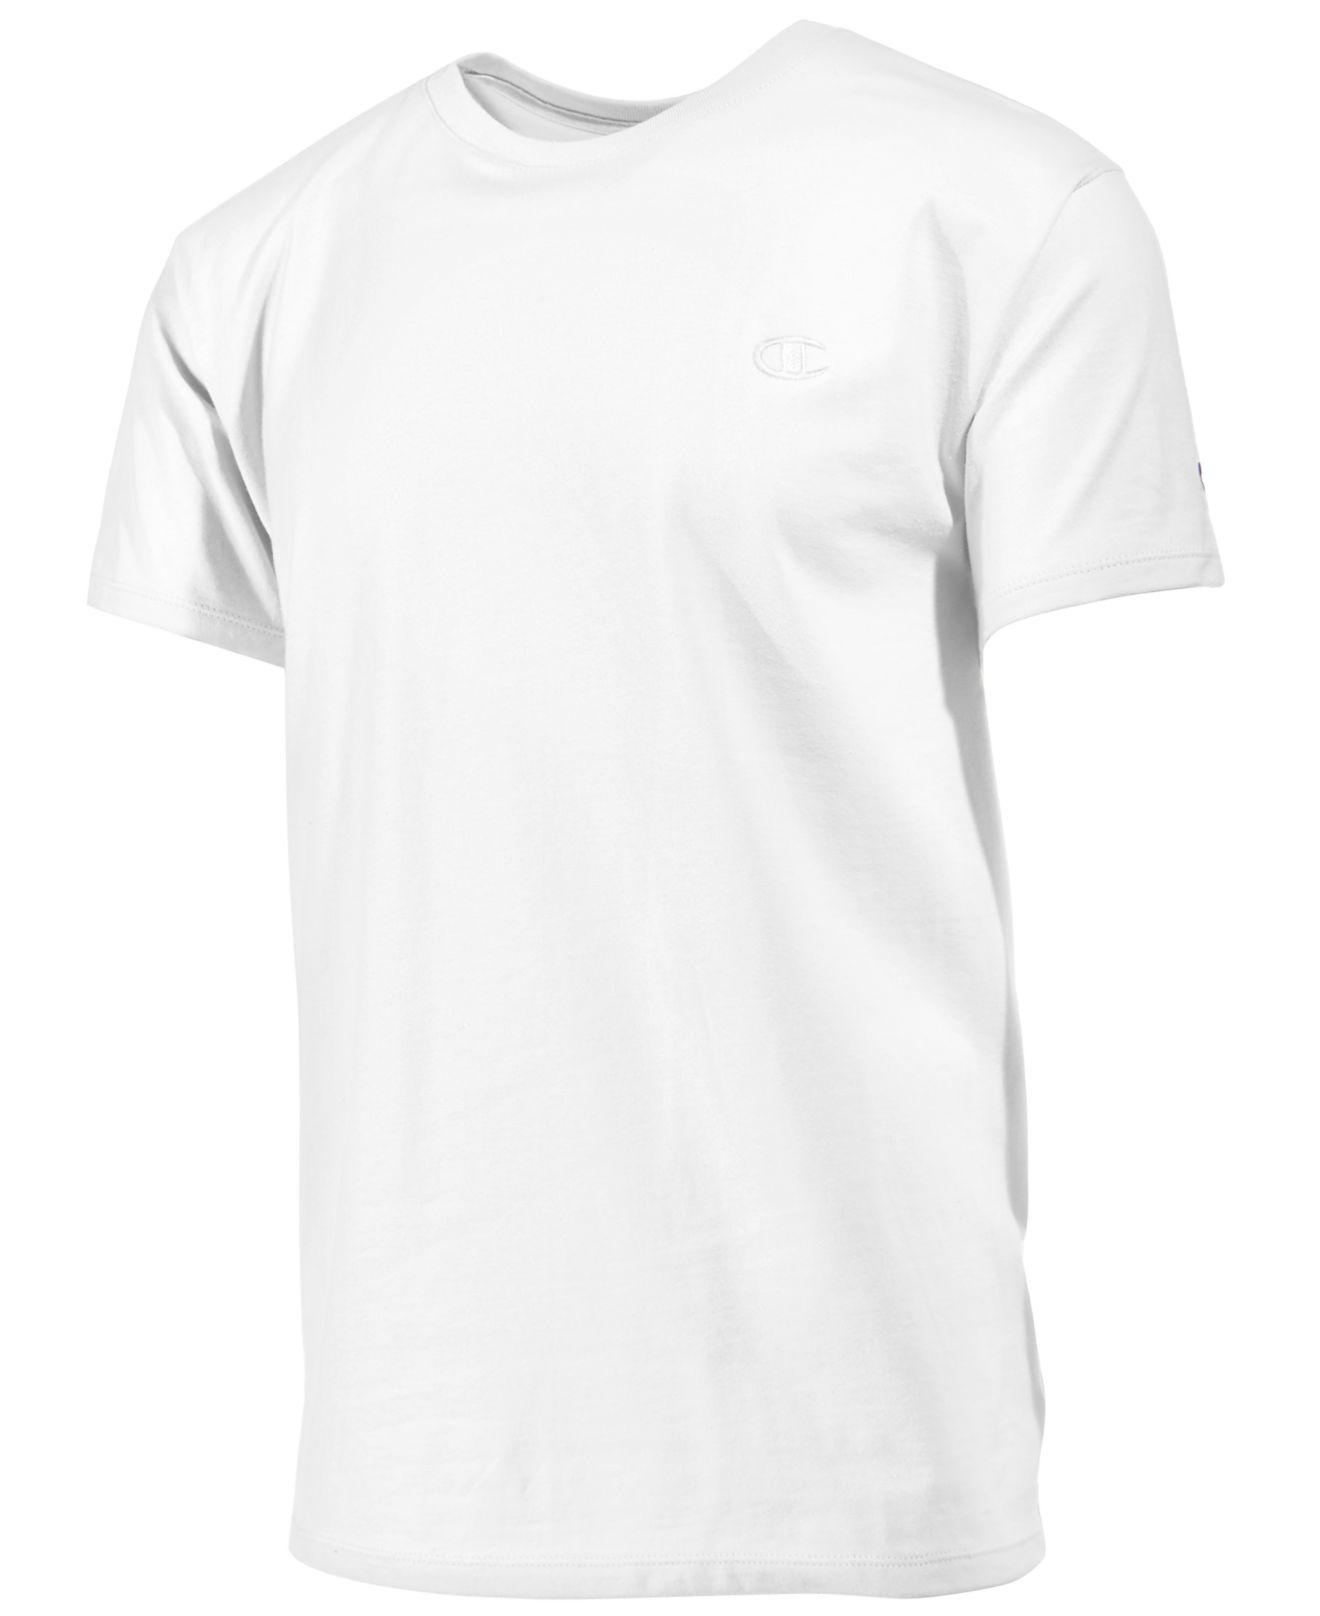 a237a852 Lyst - Champion Men's Cotton Jersey T-shirt in White for Men